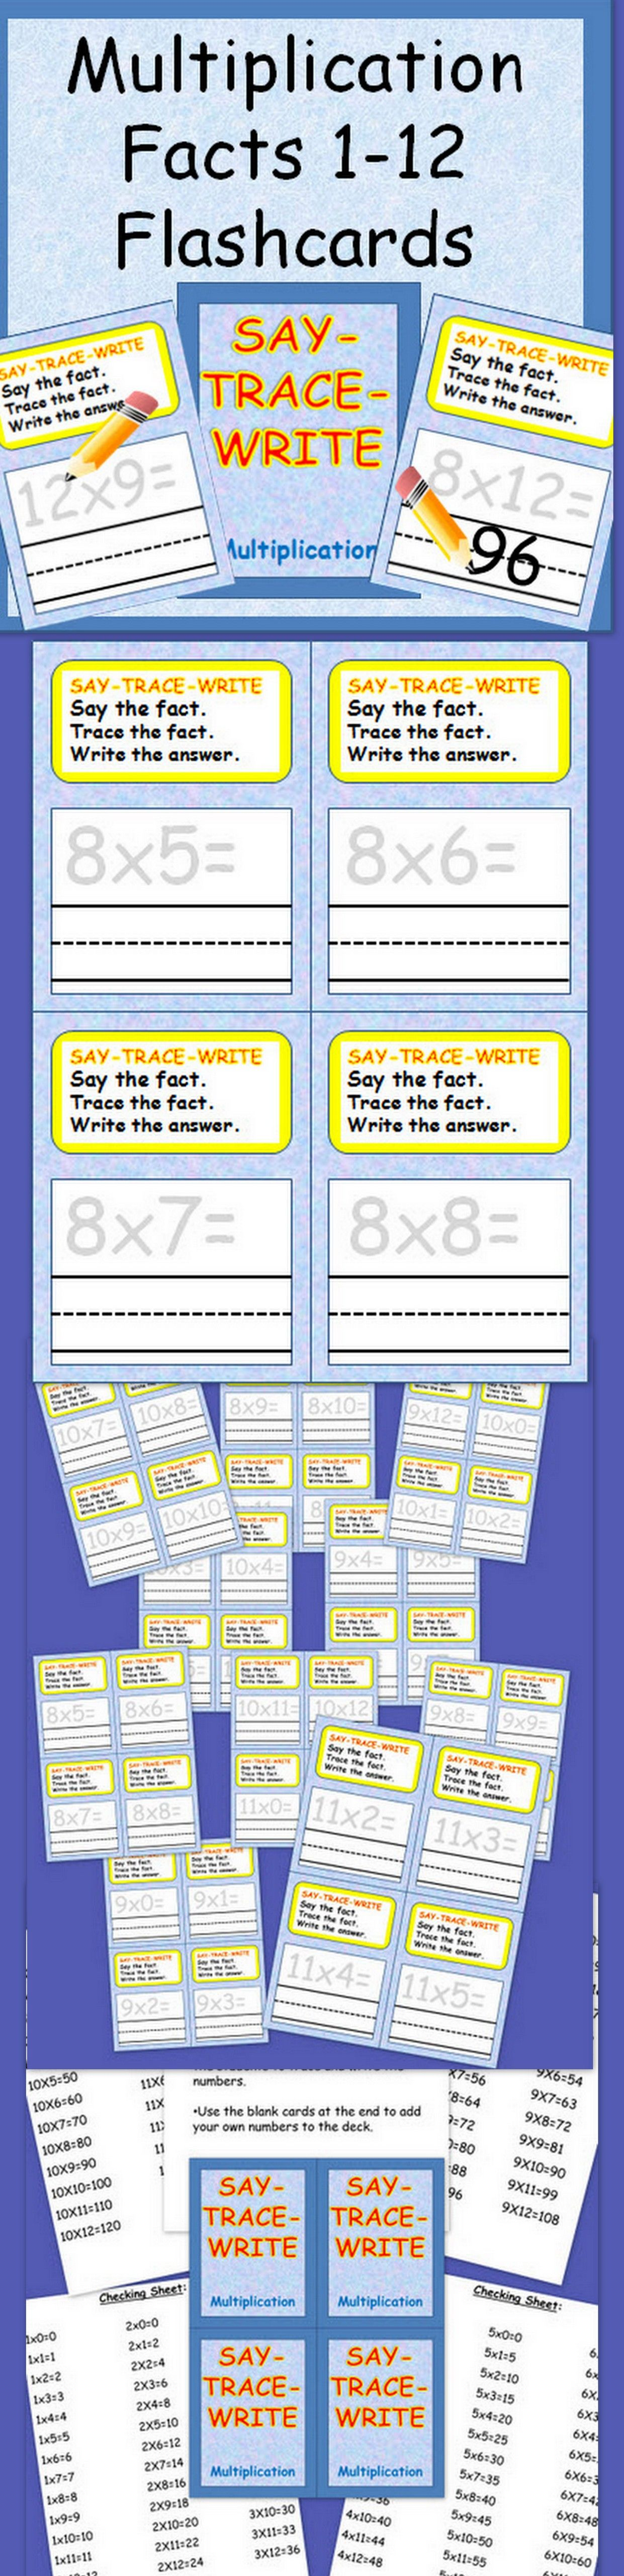 Multiplication Facts Flashcards